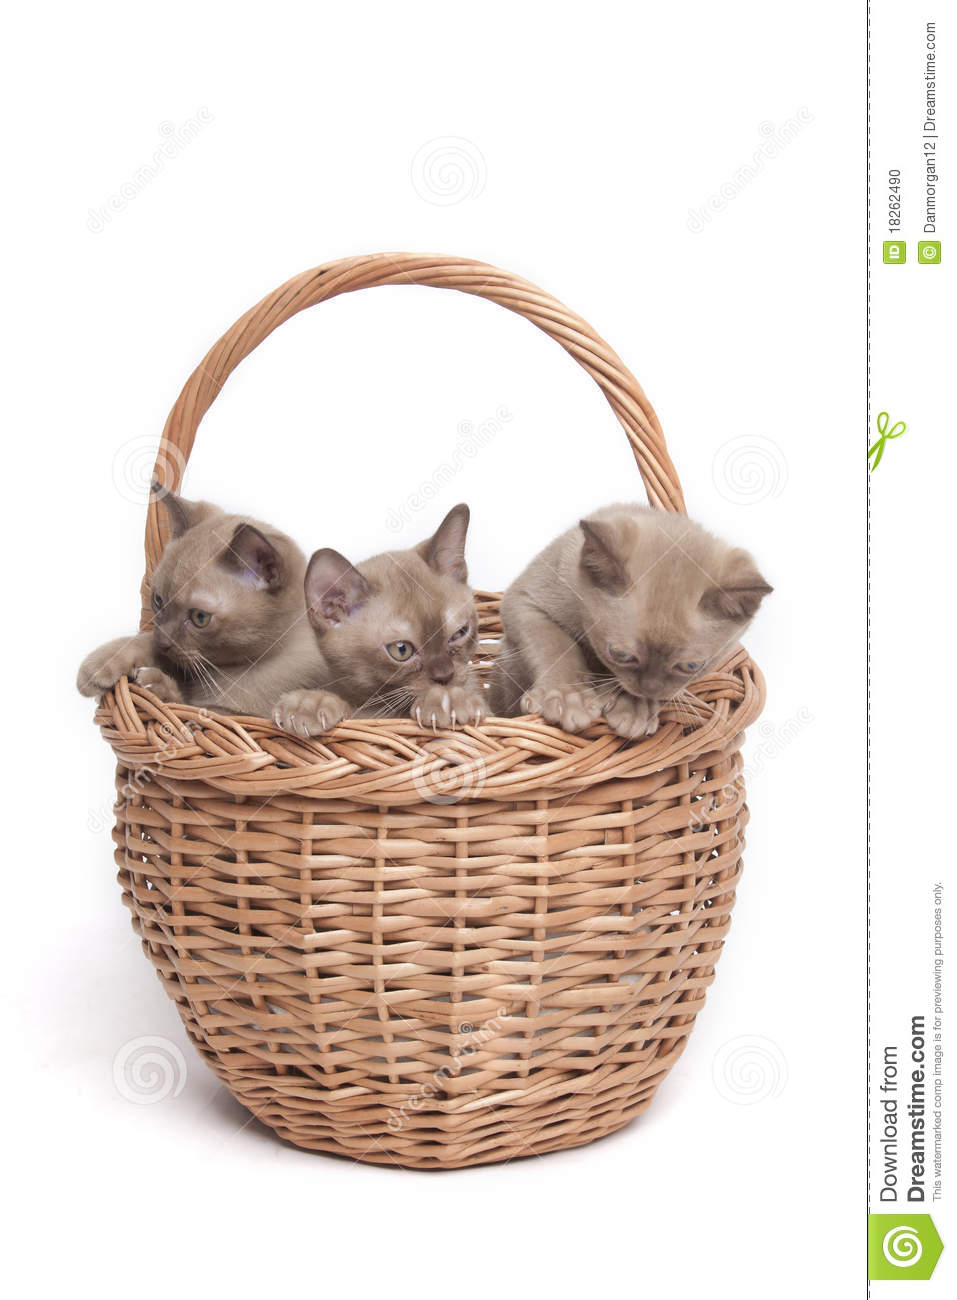 Burmese cats in big basket